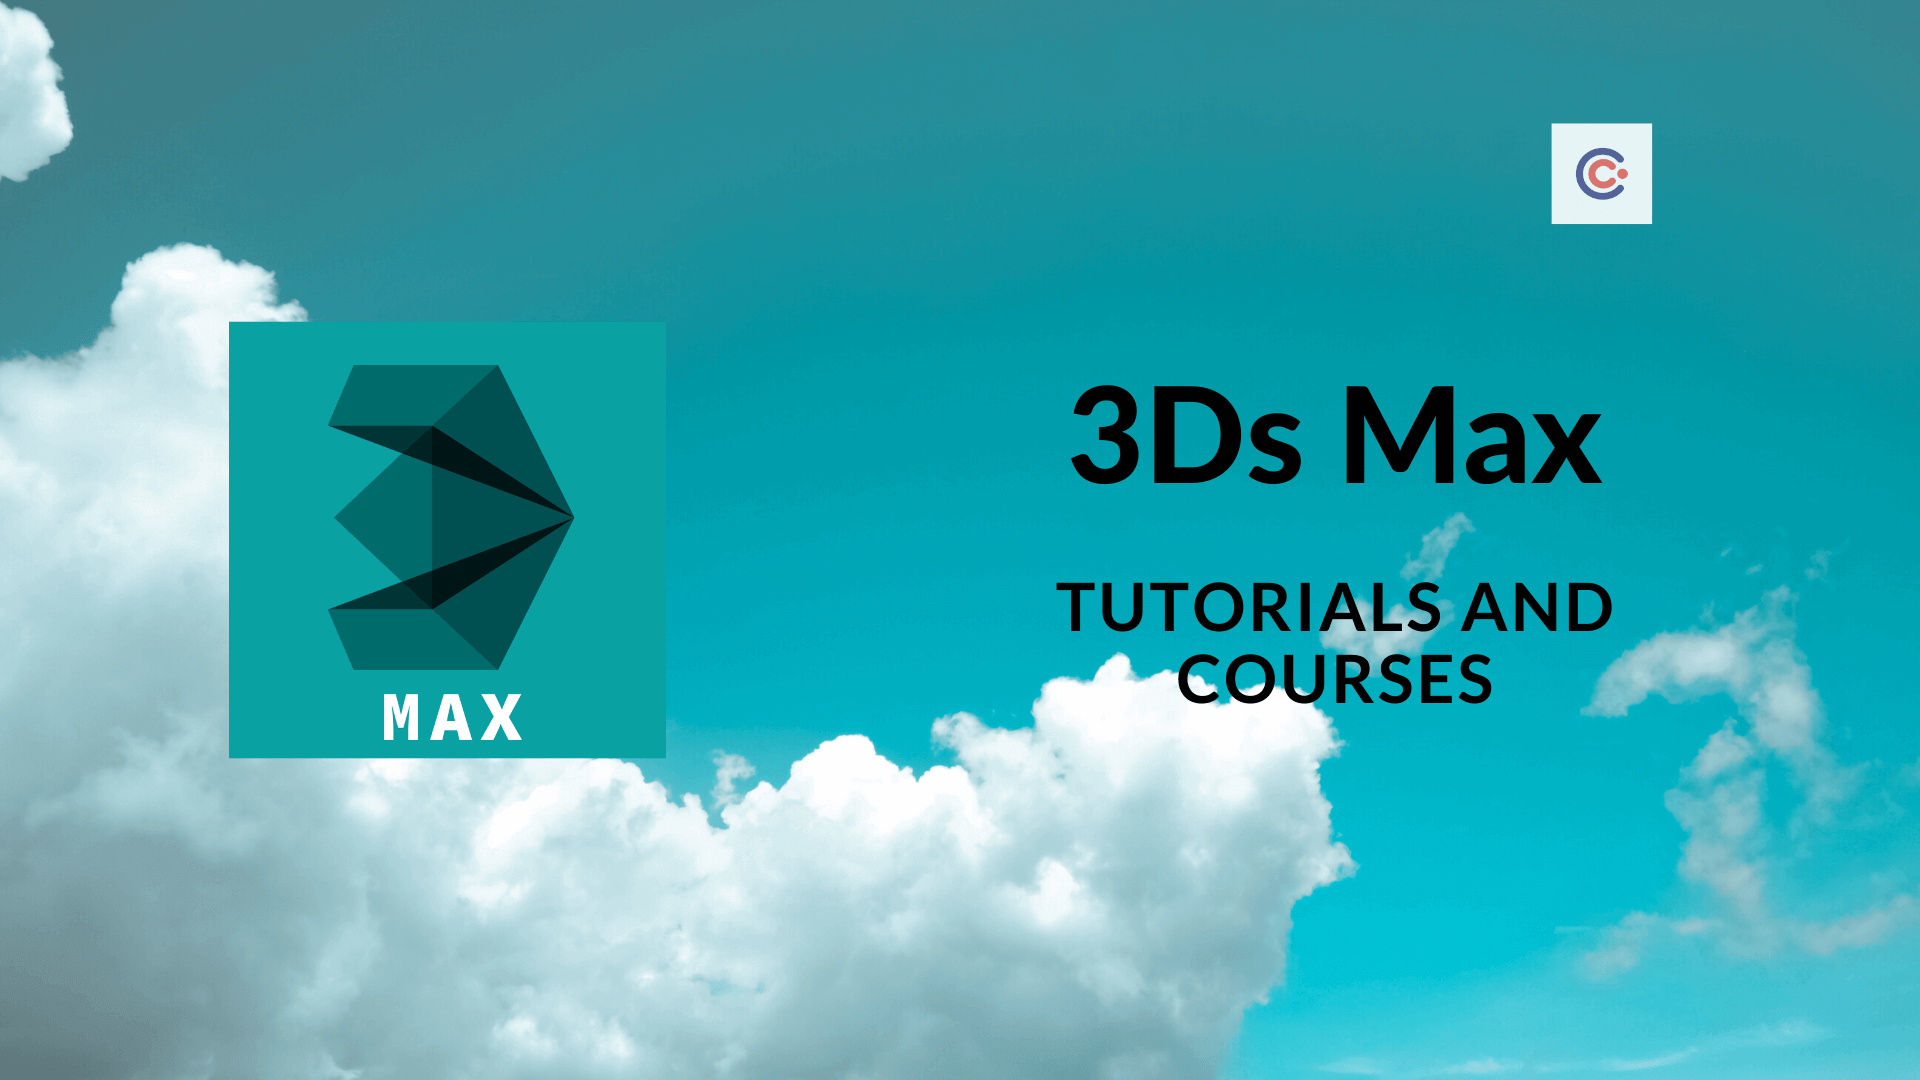 10 Best 3Ds Max Tutorials & Courses - Learn 3Ds Max Online